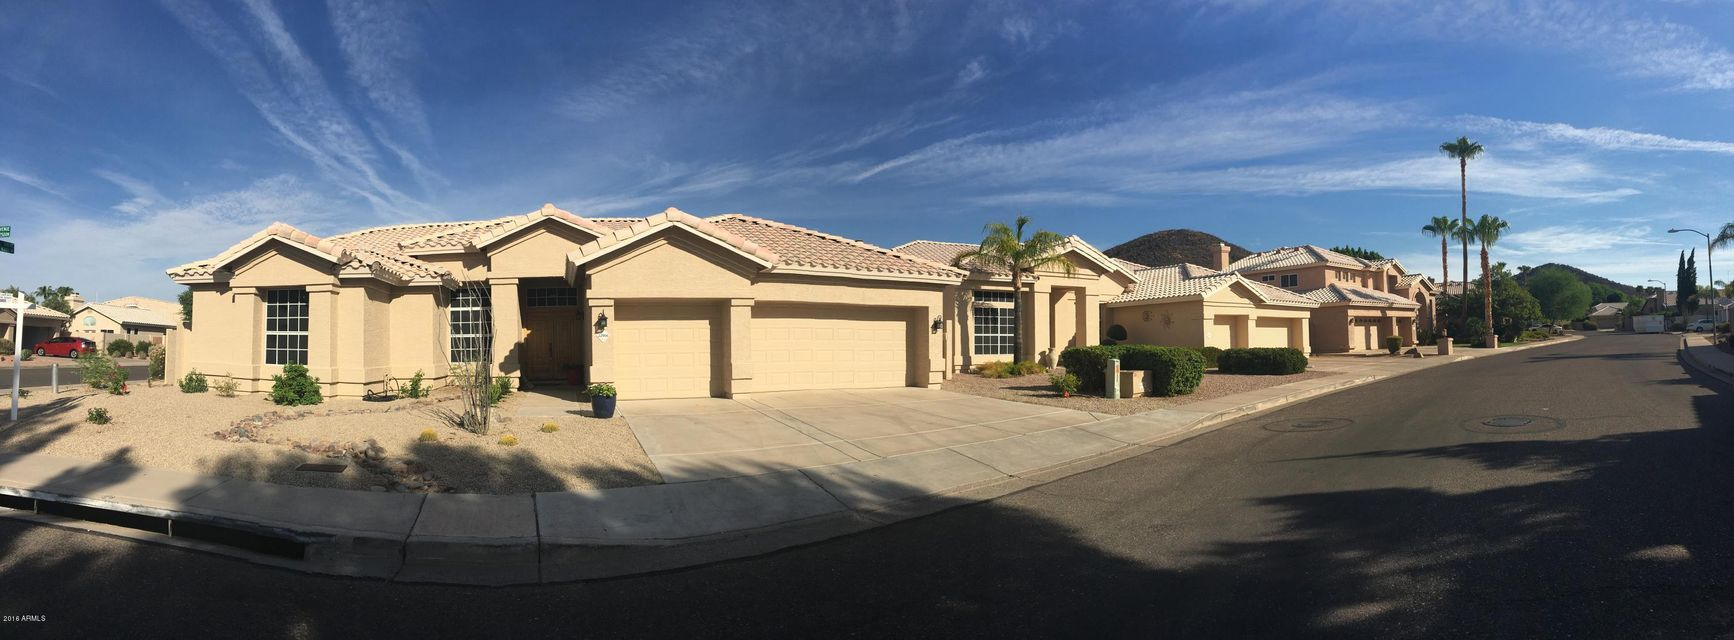 $389,900 - 4Br/3Ba - Home for Sale in Top Of The Ranch, Glendale